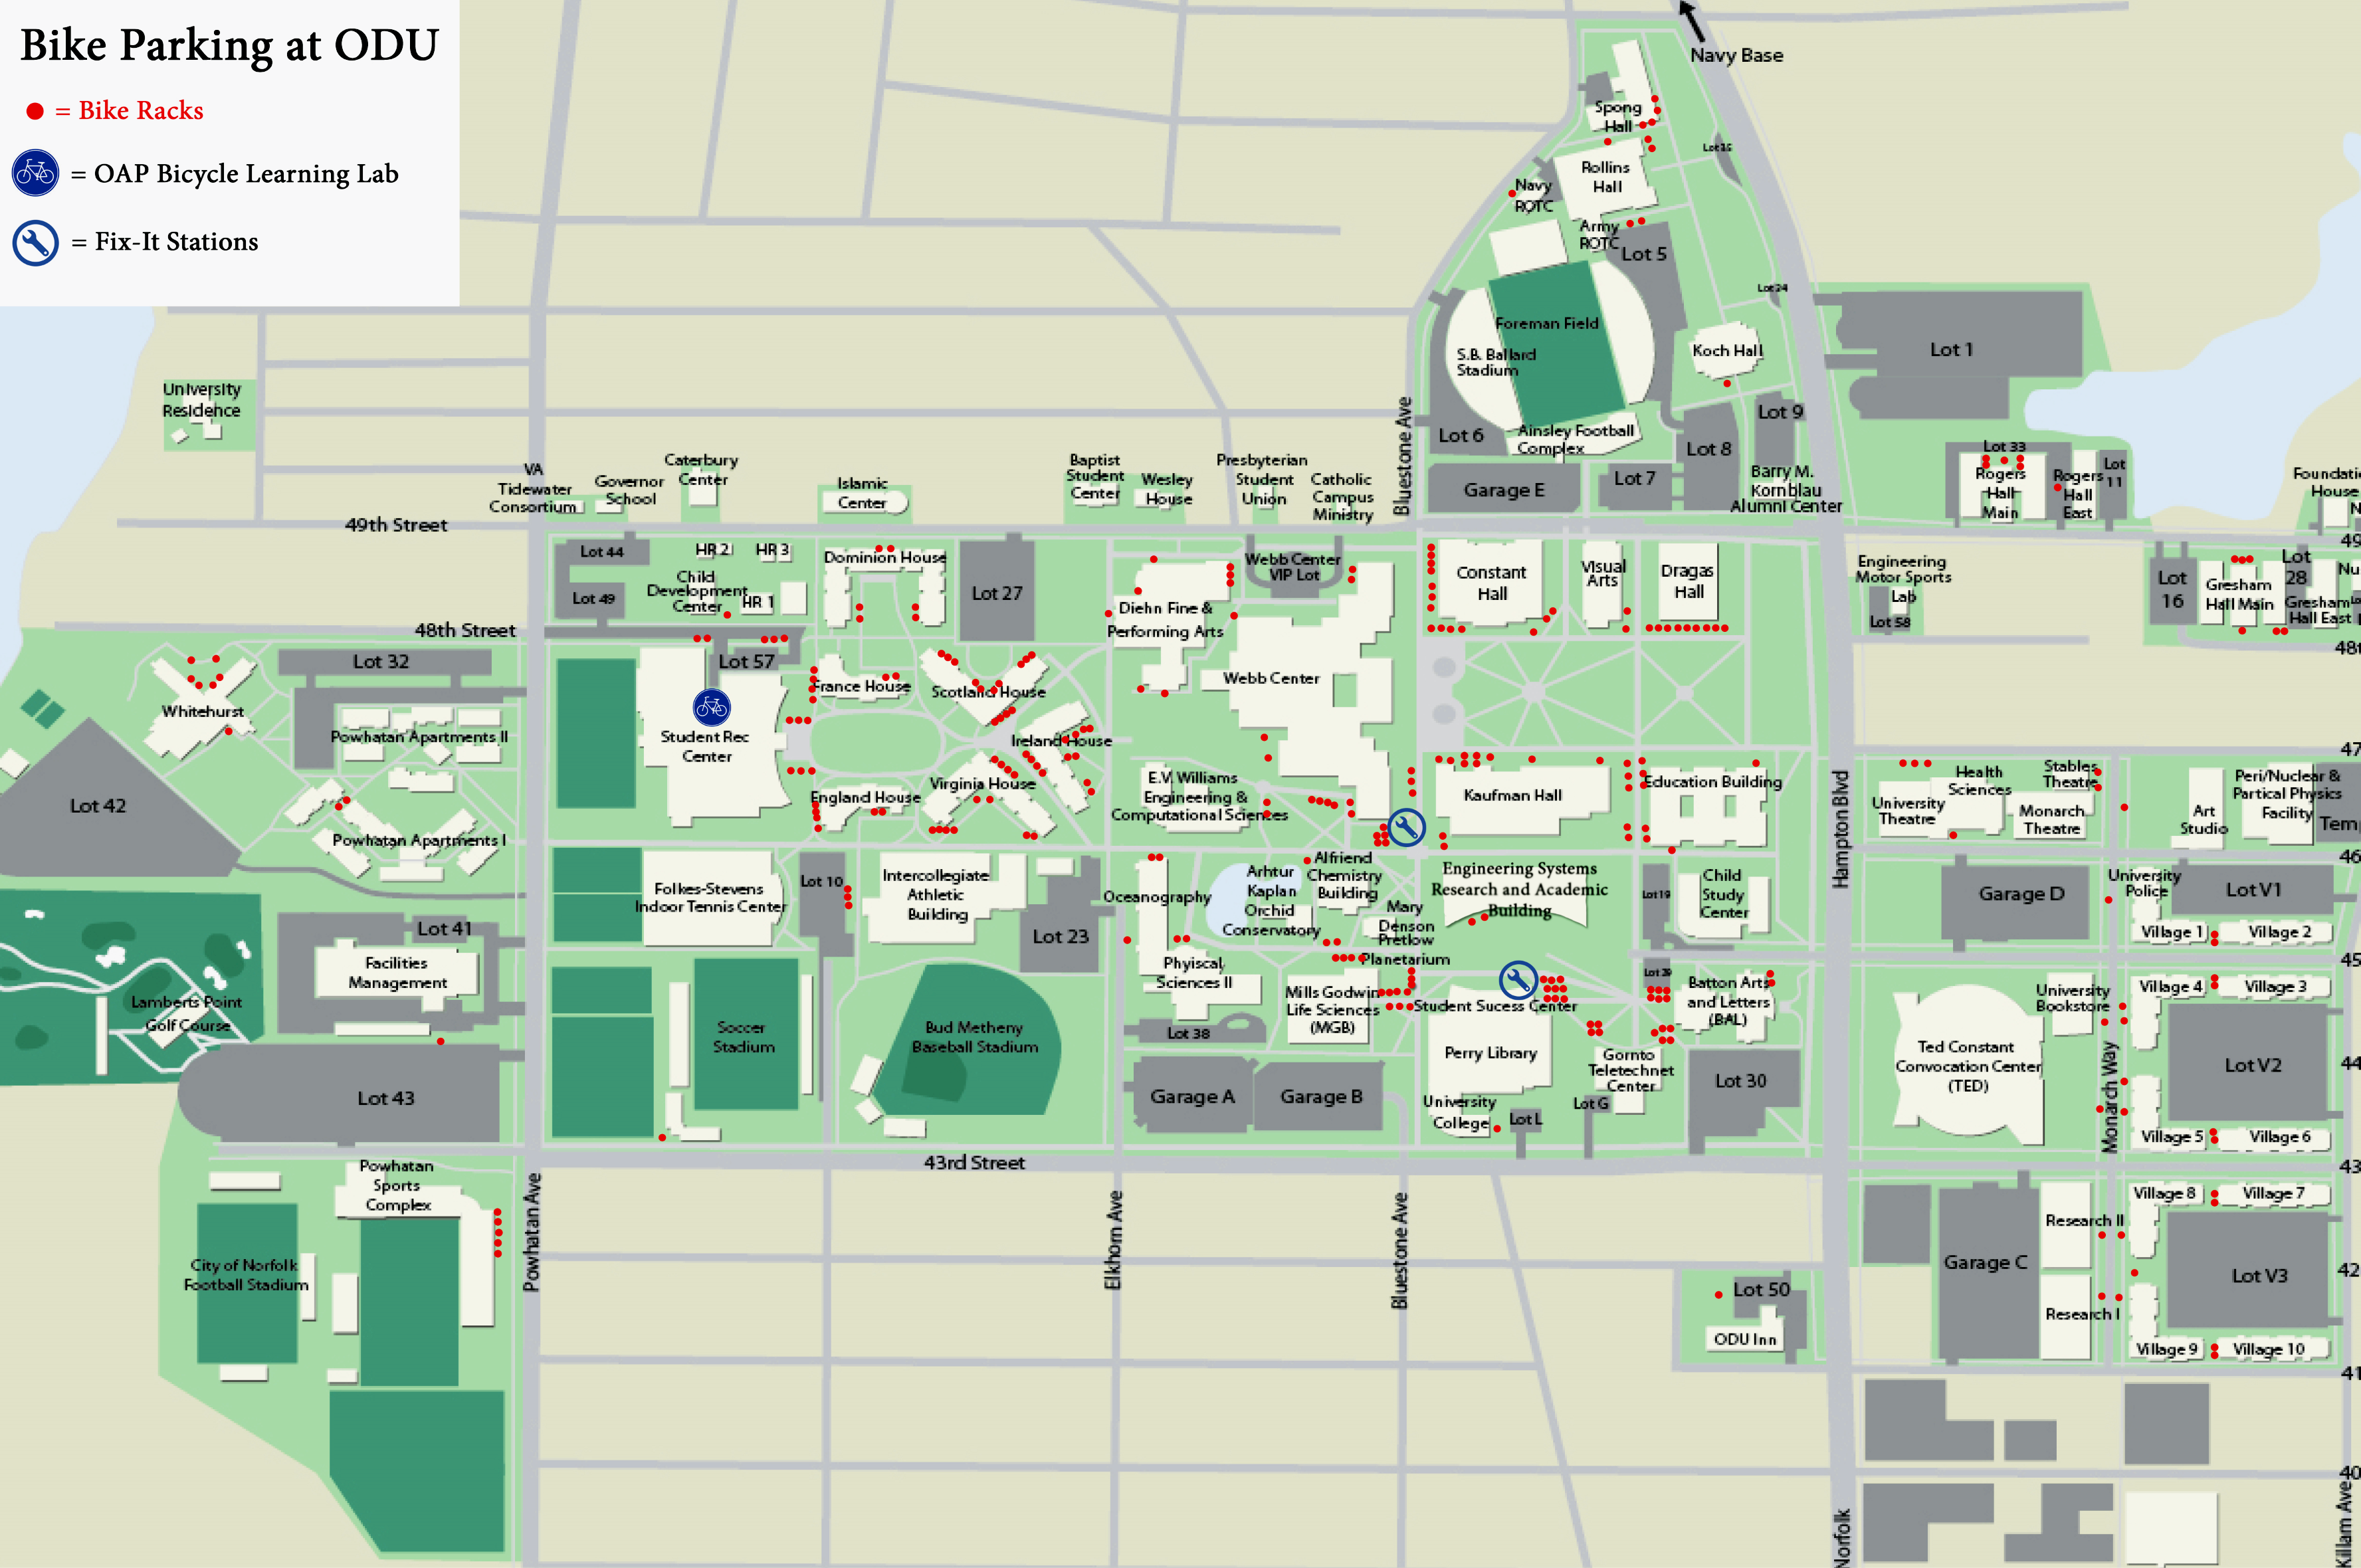 Old Dominion Campus Map.Old Dominion University Campus Map Www Picsbud Com